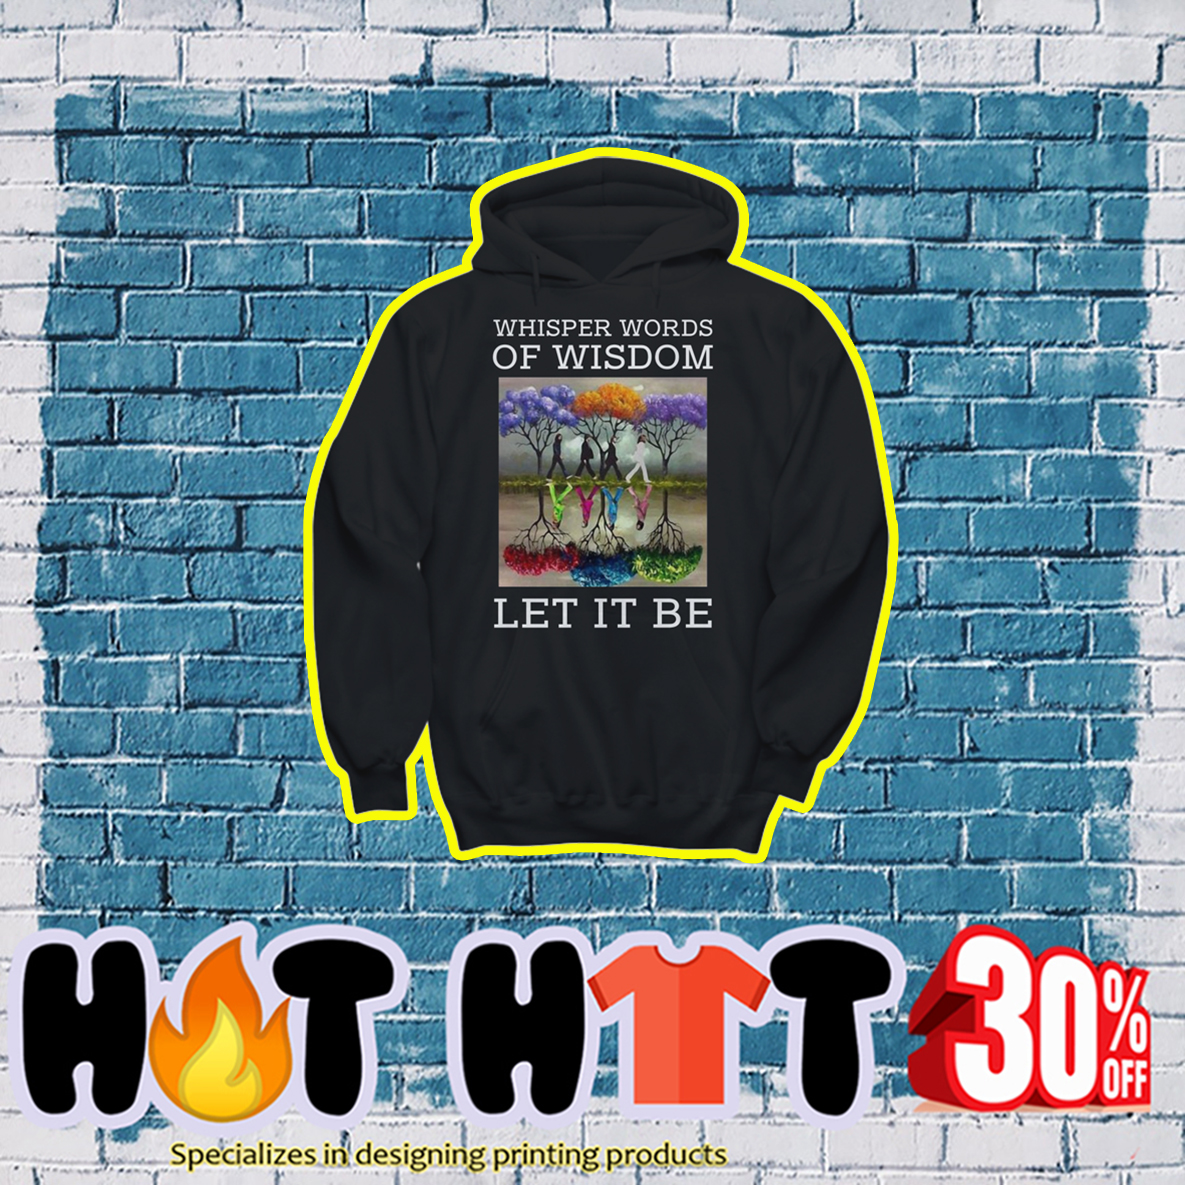 The Beatles Reflection Whisper Words Of Wisdom Let it Be hoodie